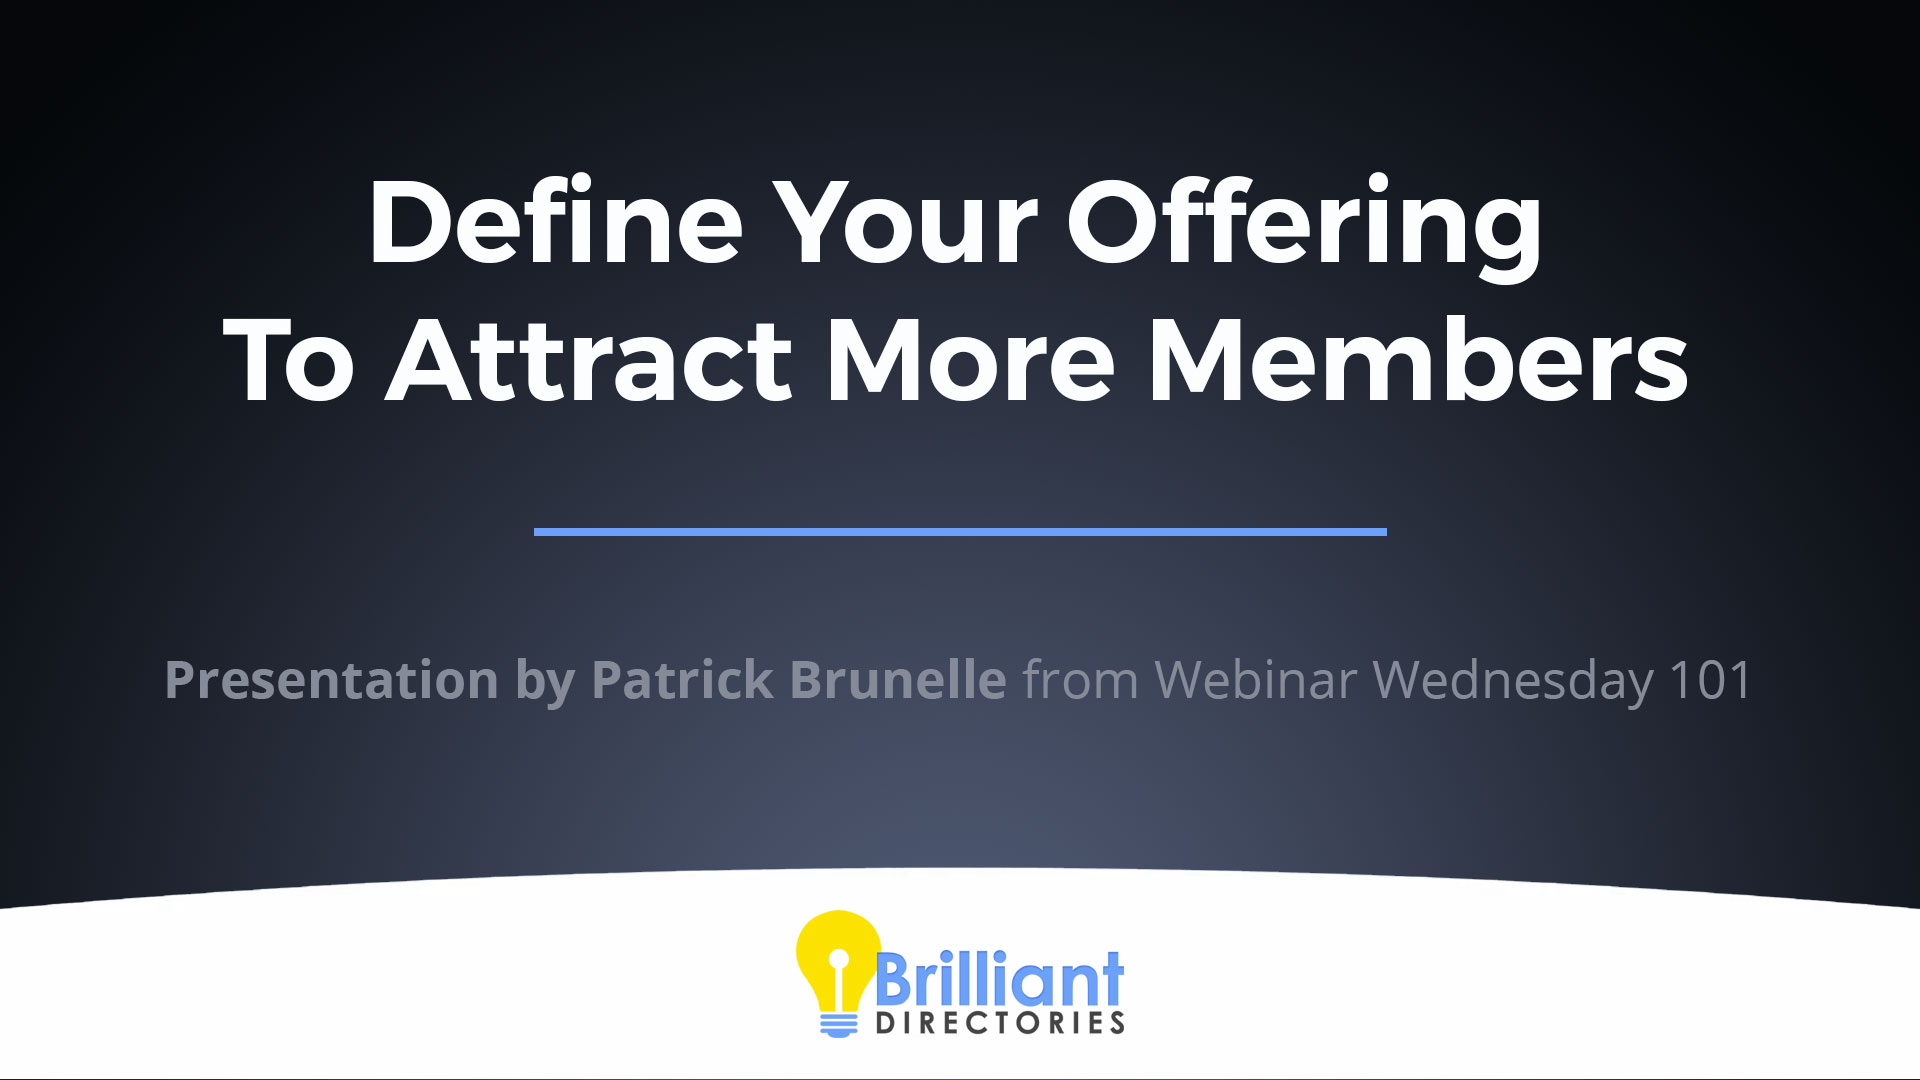 https://www.brilliantdirectories.com/blog/attract-more-members-to-your-website-by-defining-your-offering